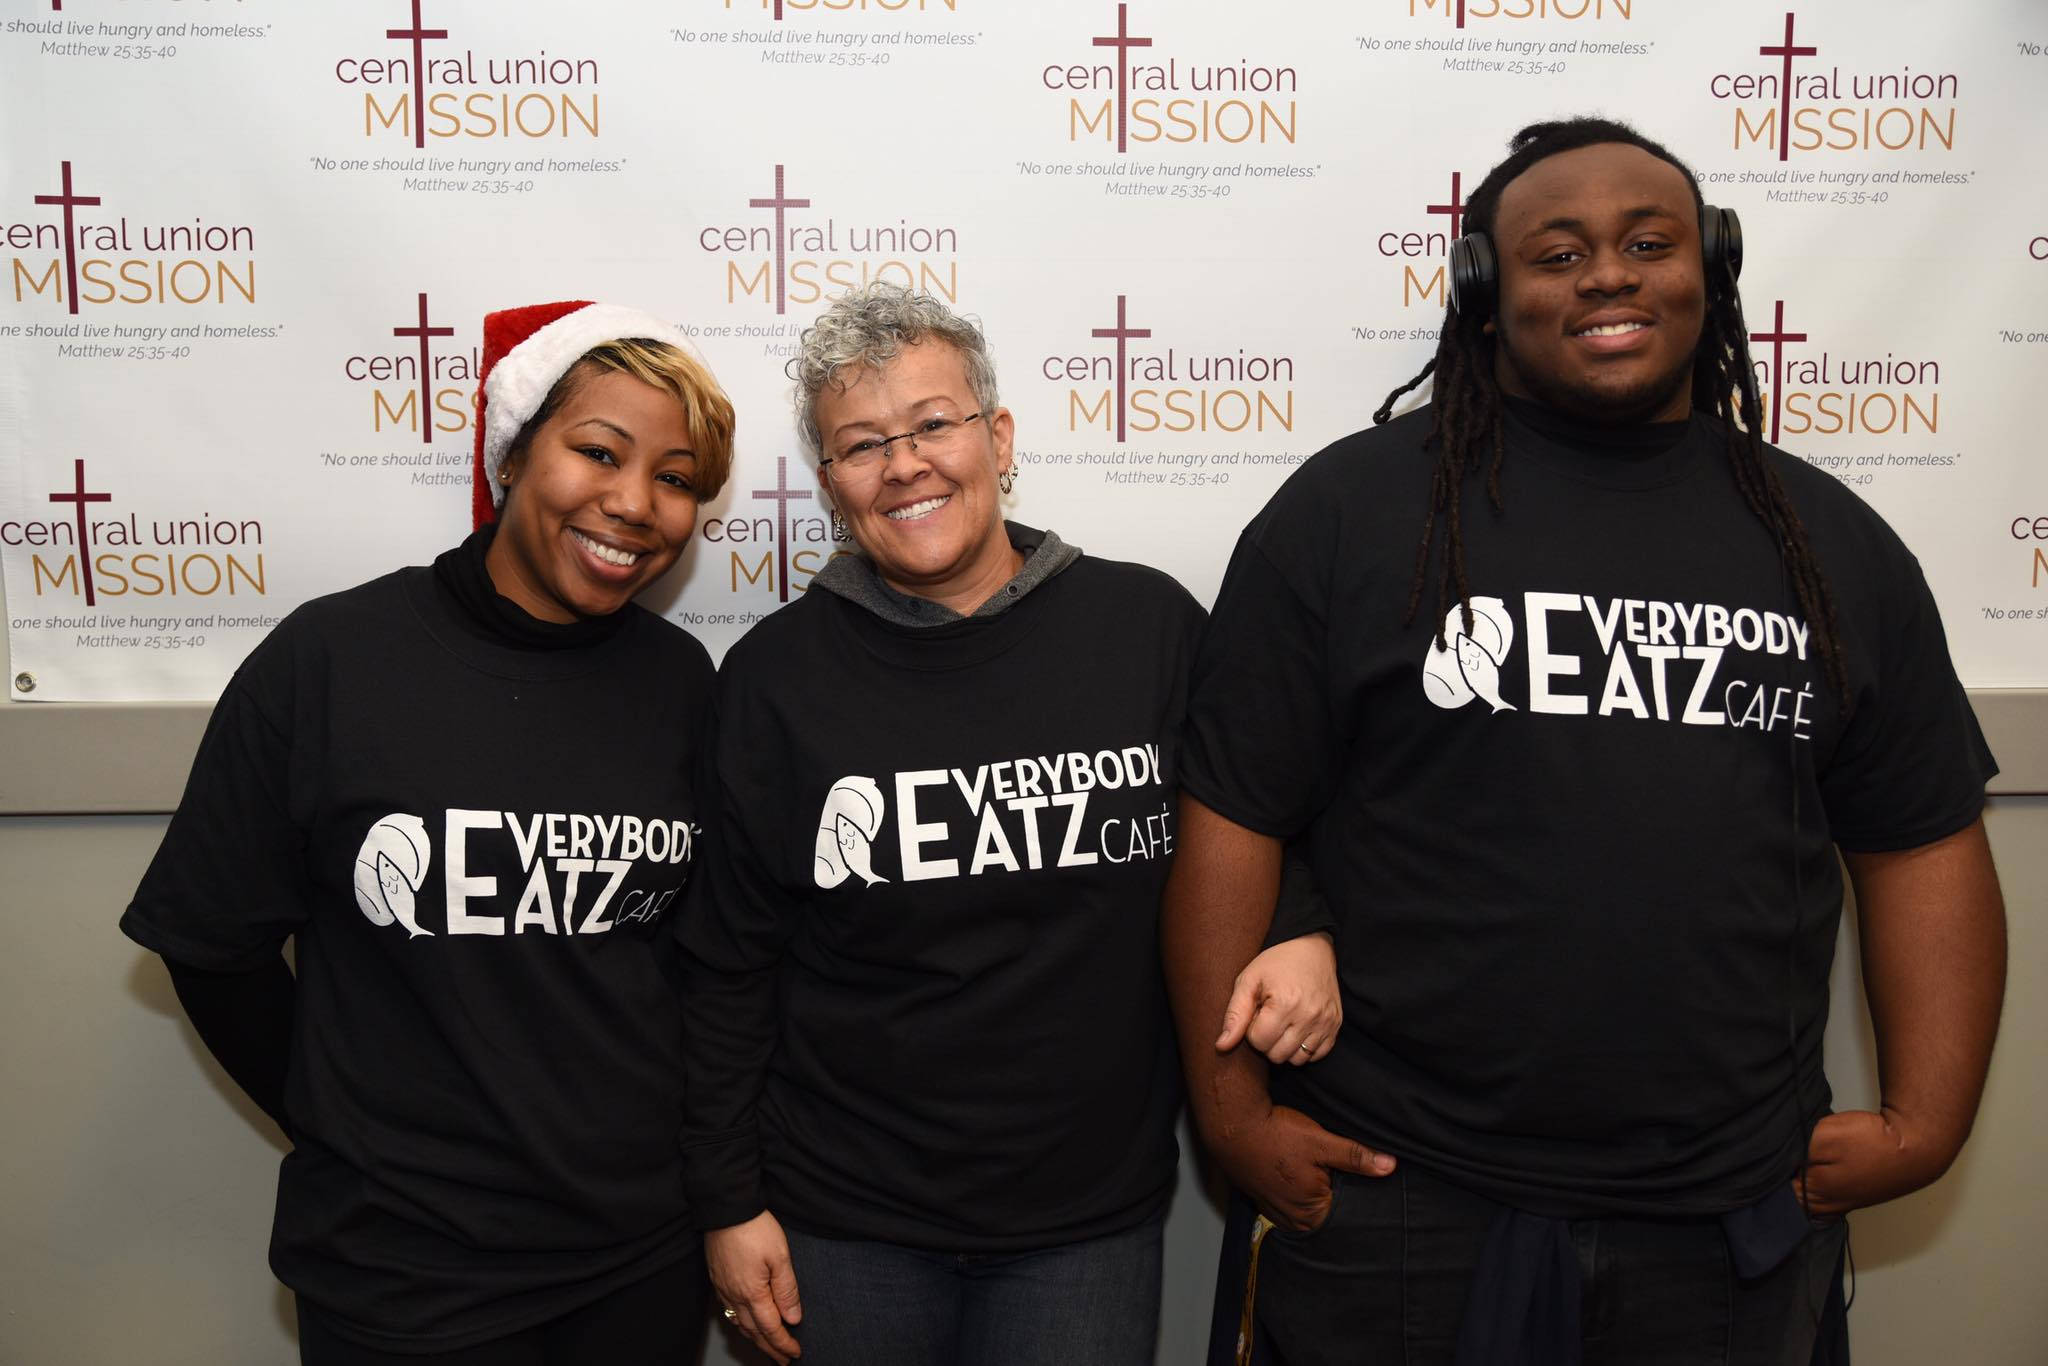 Everybody Eatz Cafe - Partnership with local homeless shelters